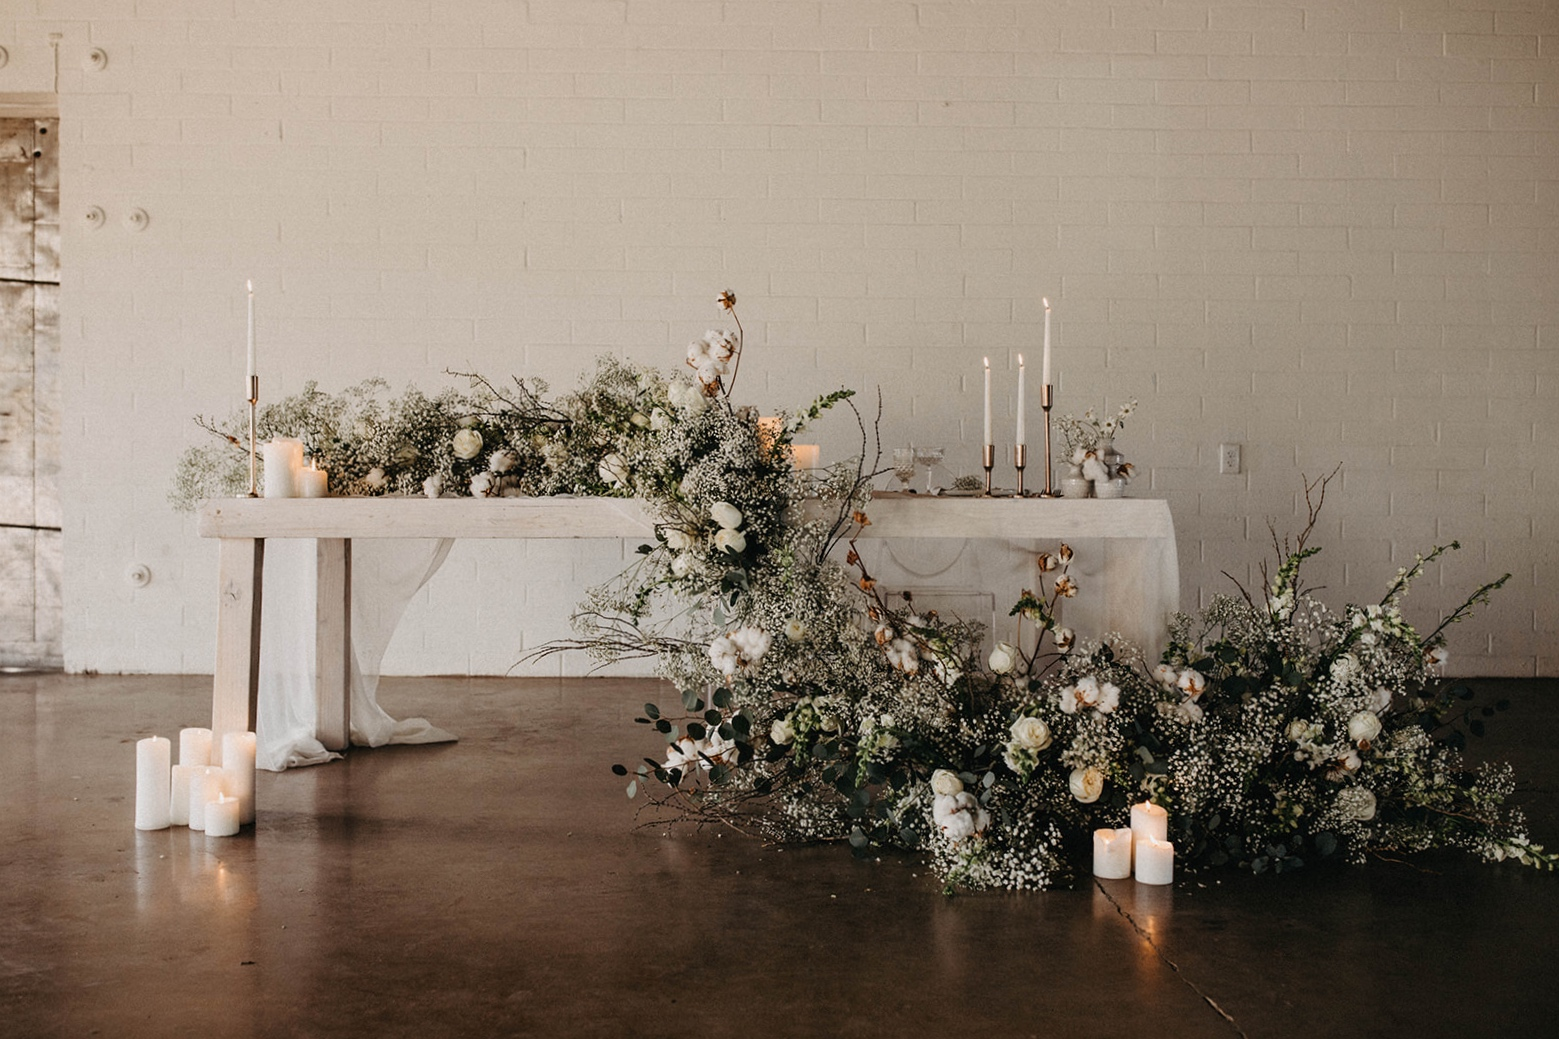 Modern Babies Breath Wedding Inspiration - Arizona florist Phoenix scottsdale Mesa chandler Sedona Prescott - Sweetheart Table - Statement Piece